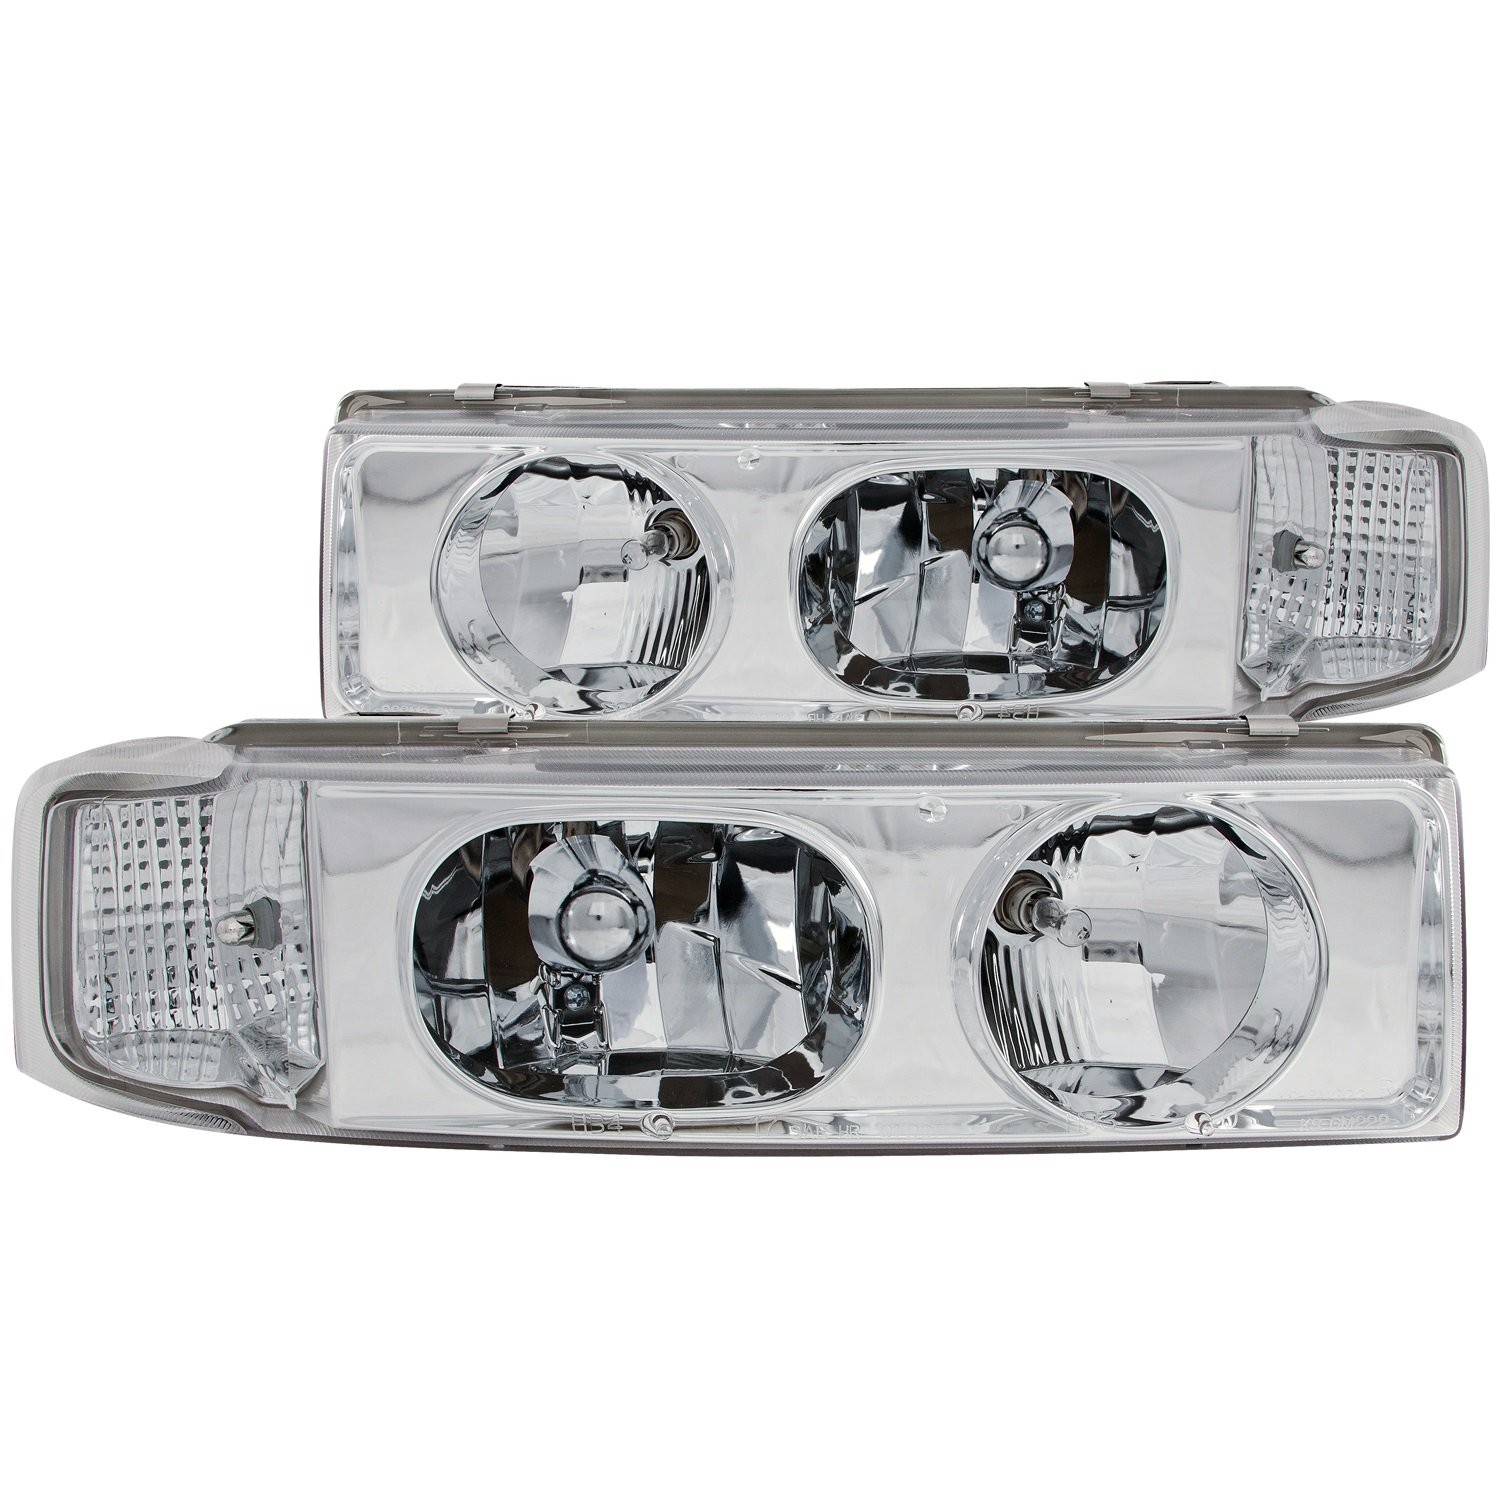 Anzo USA 111001 Chevrolet Astro 1 Pc Chrome Headlight Assembly Sold in Pairs